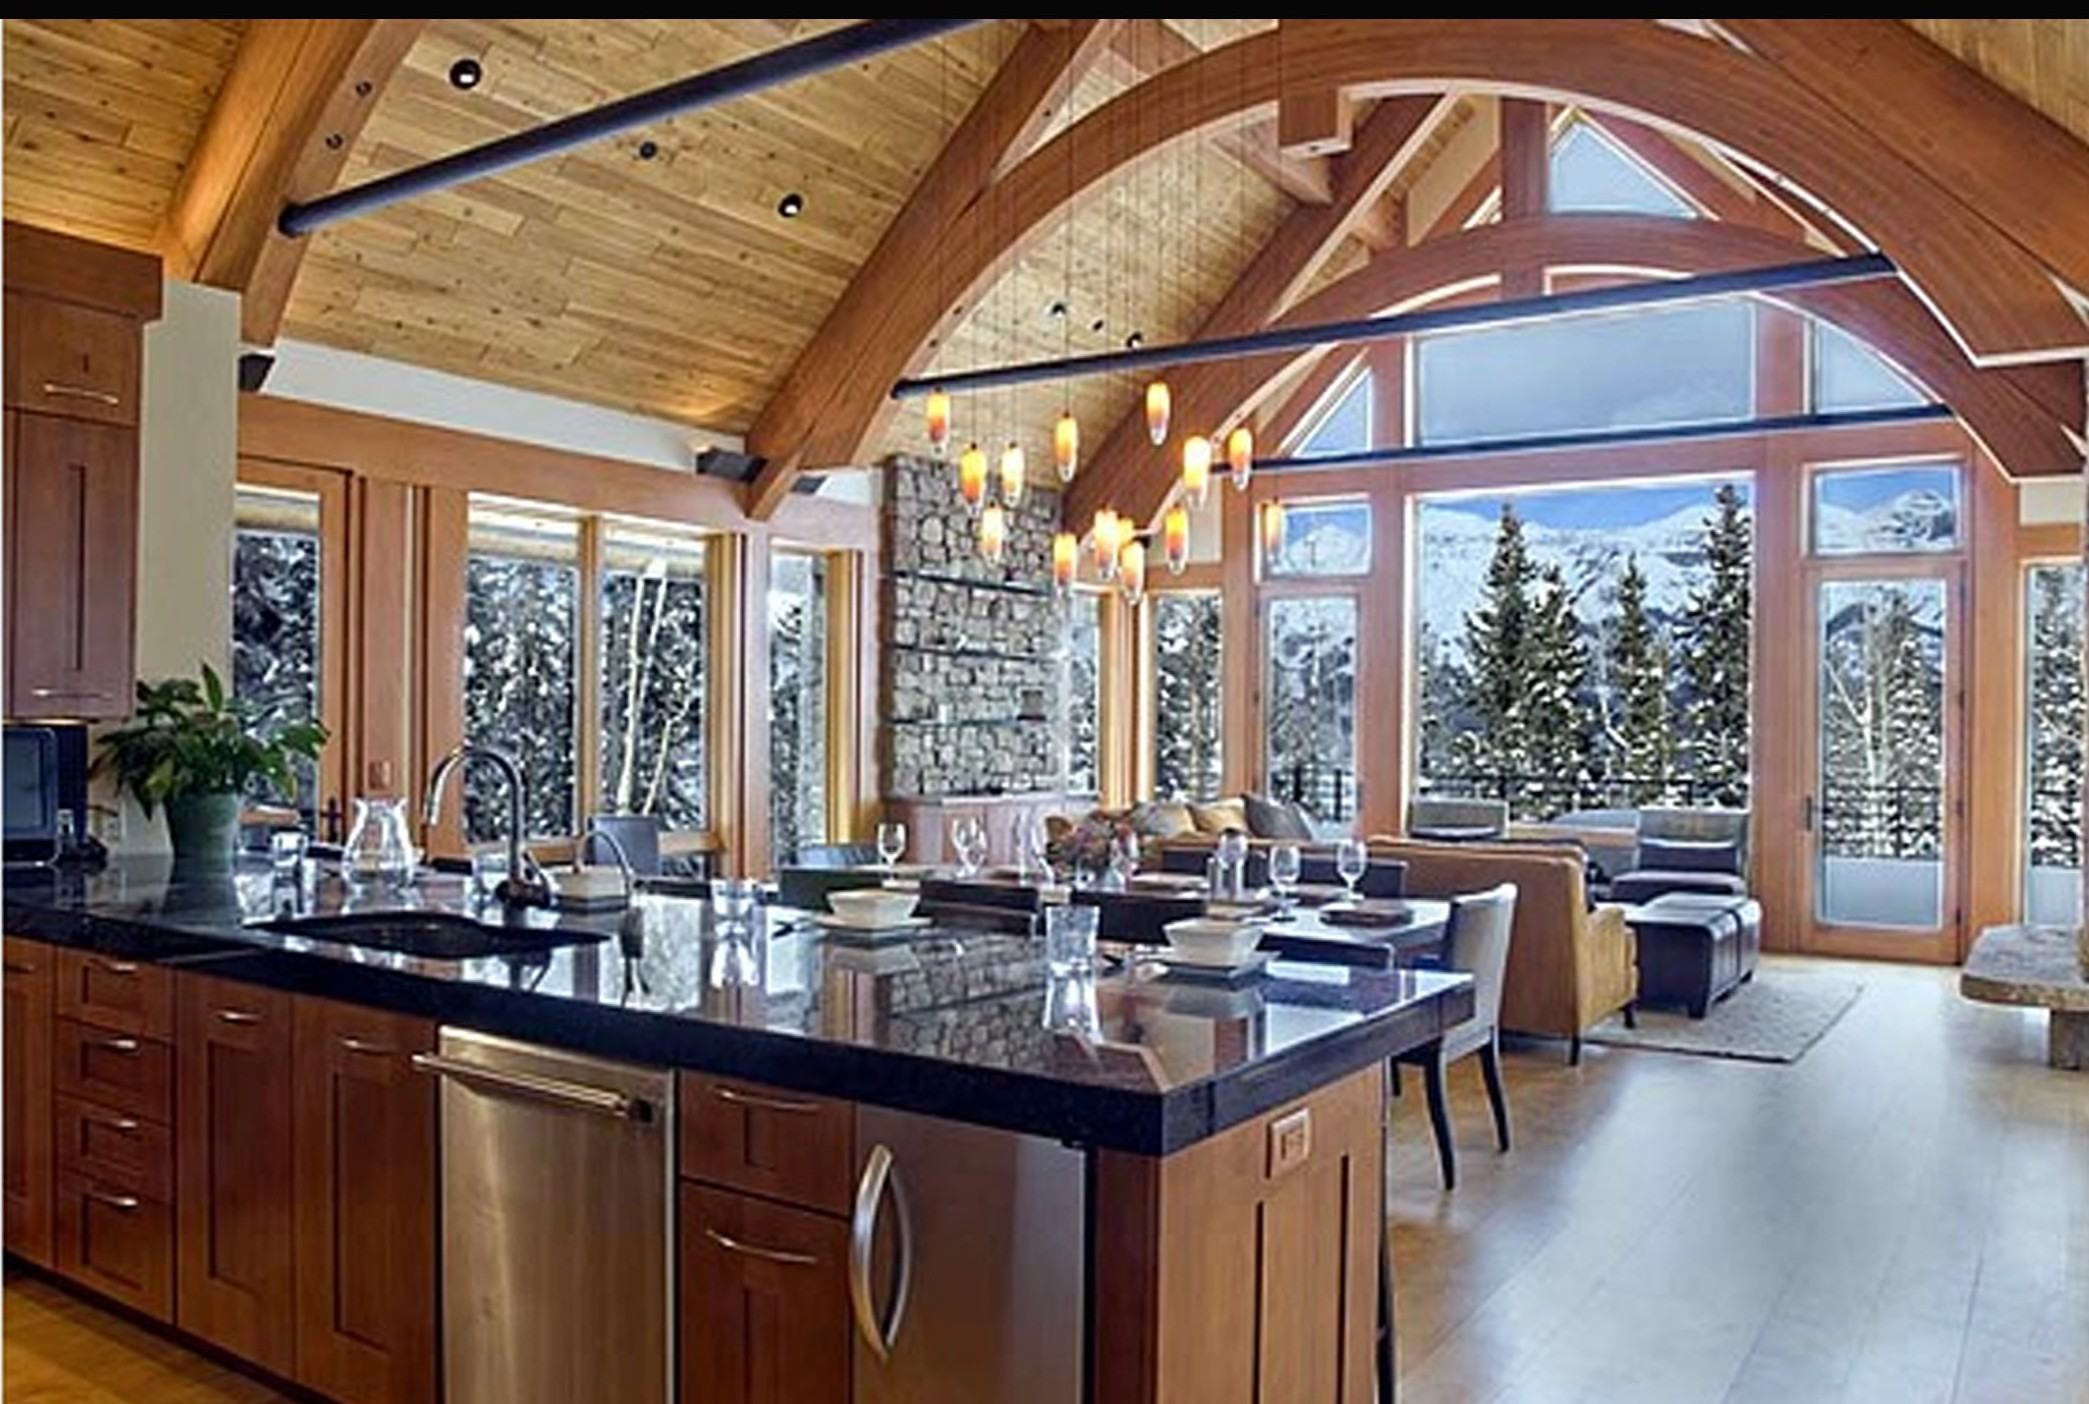 6 Dream Kitchens For Holiday Cooking And Entertaining Huffpost